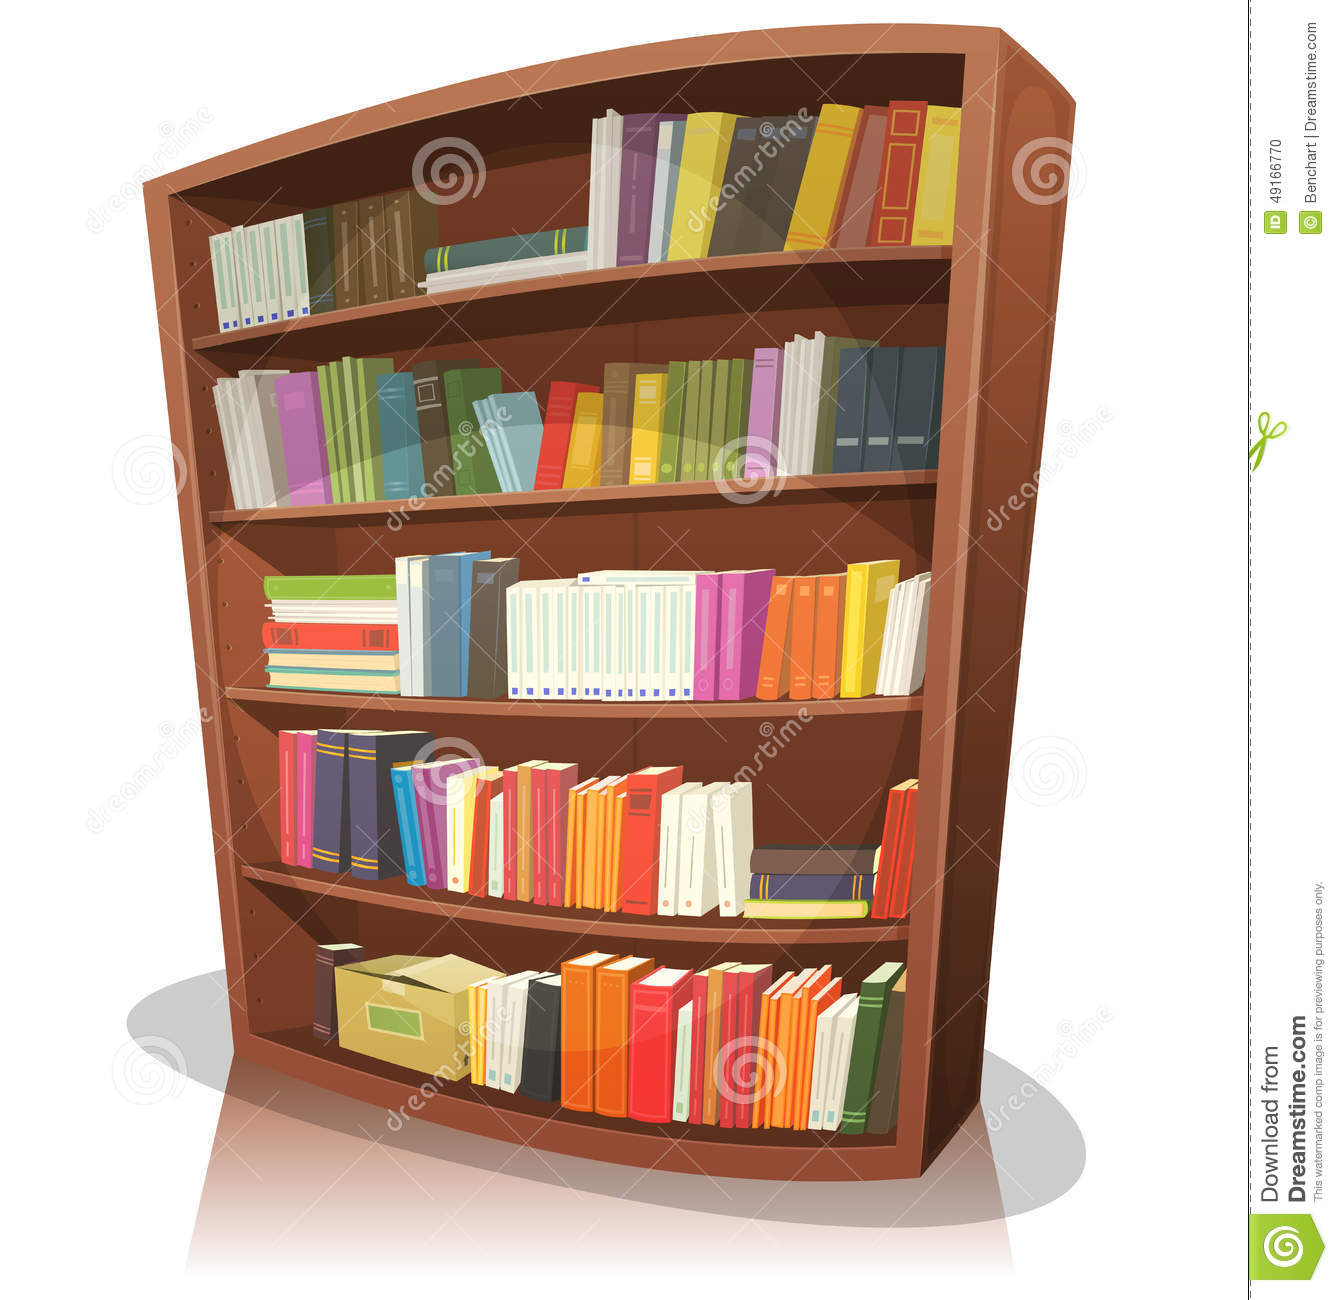 library shelves clipart - photo #46